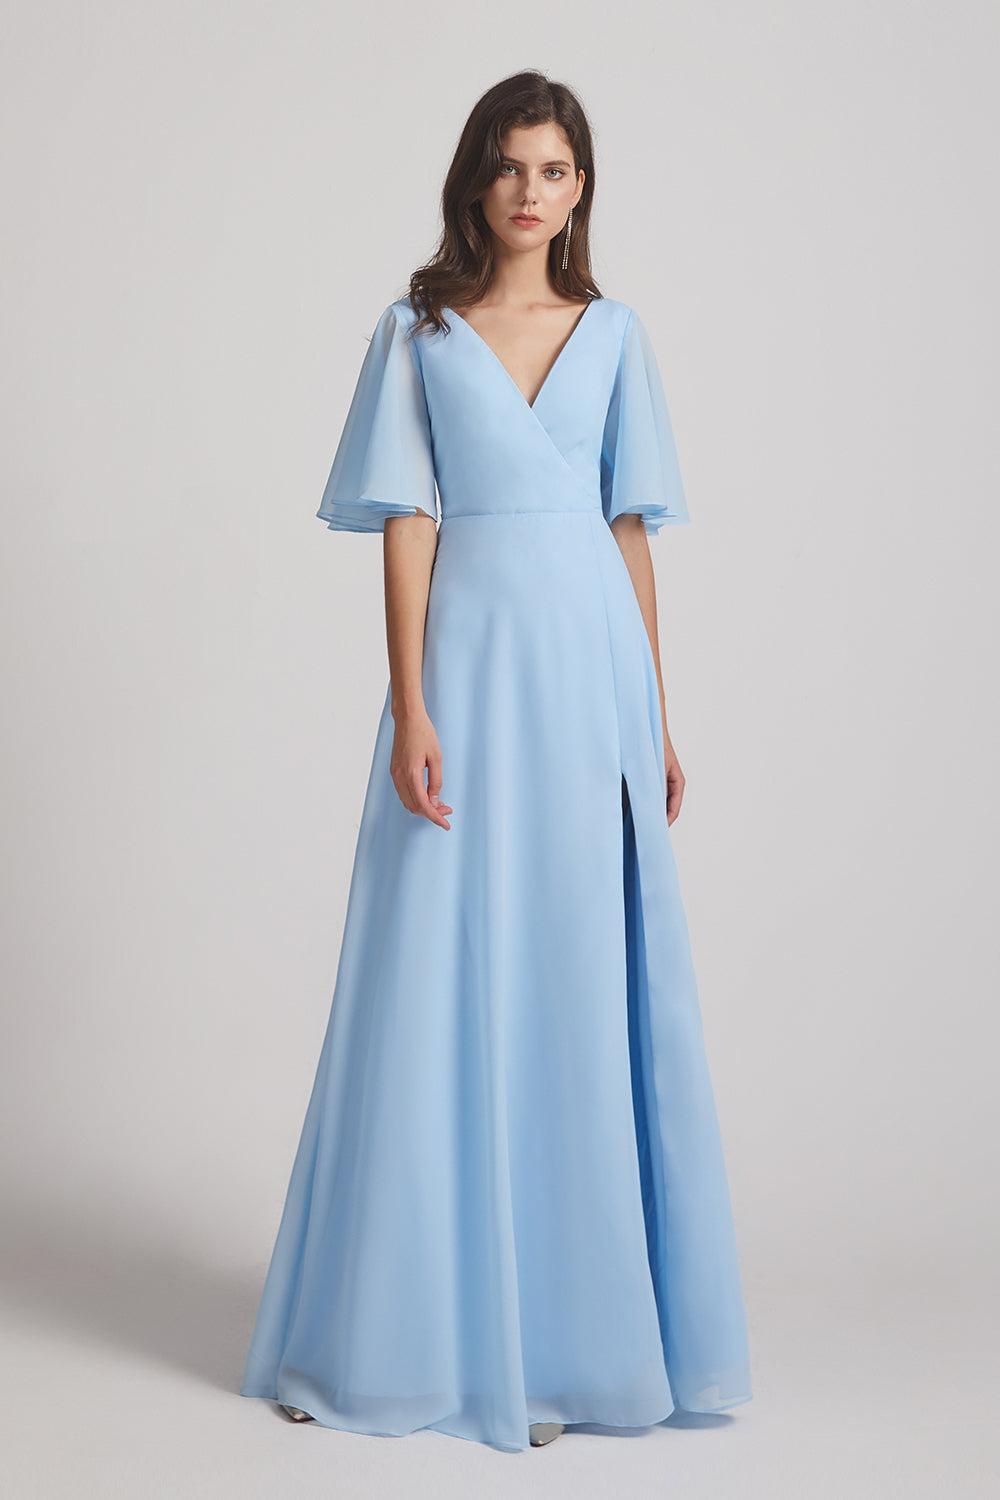 v-neck sky blue chiffon long bridesmaids dresses